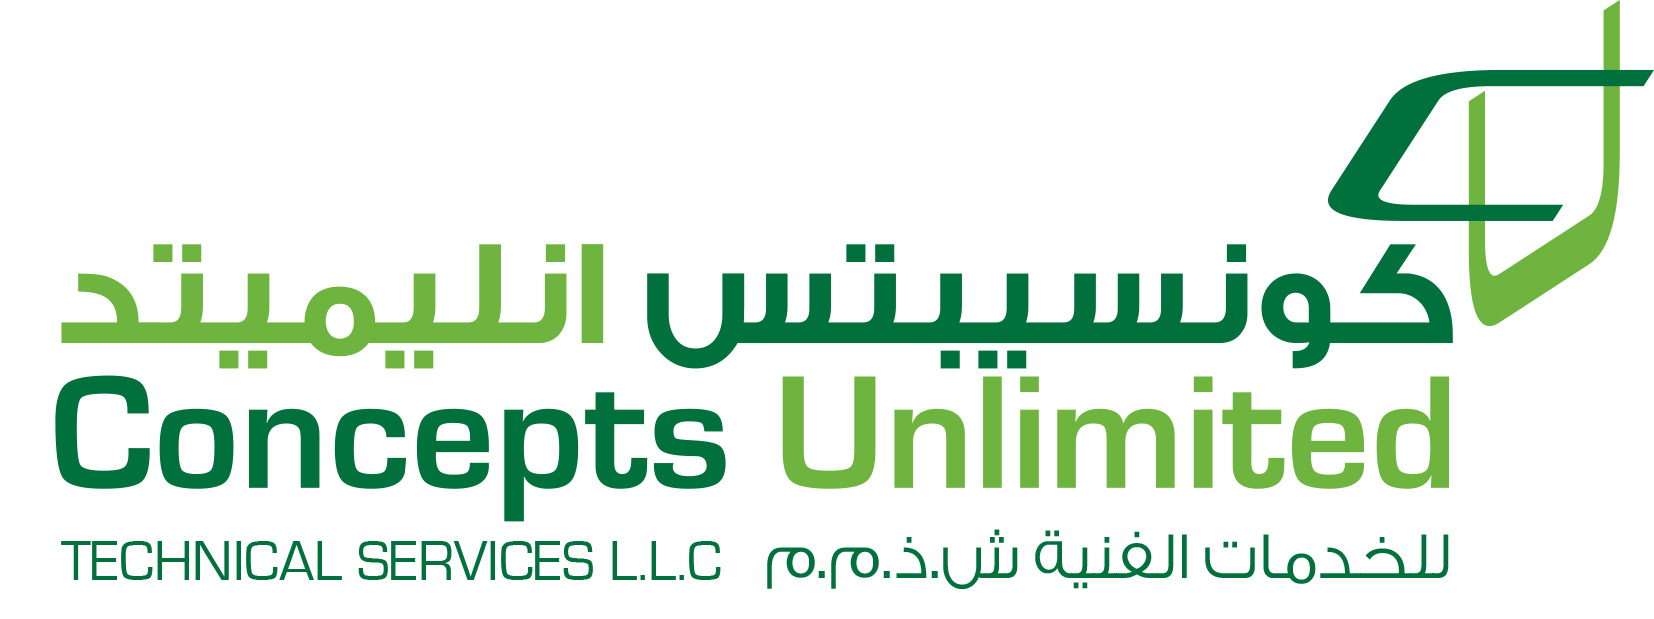 CONCEPTS UNLIMITED TECHNICAL SERVICES LLC